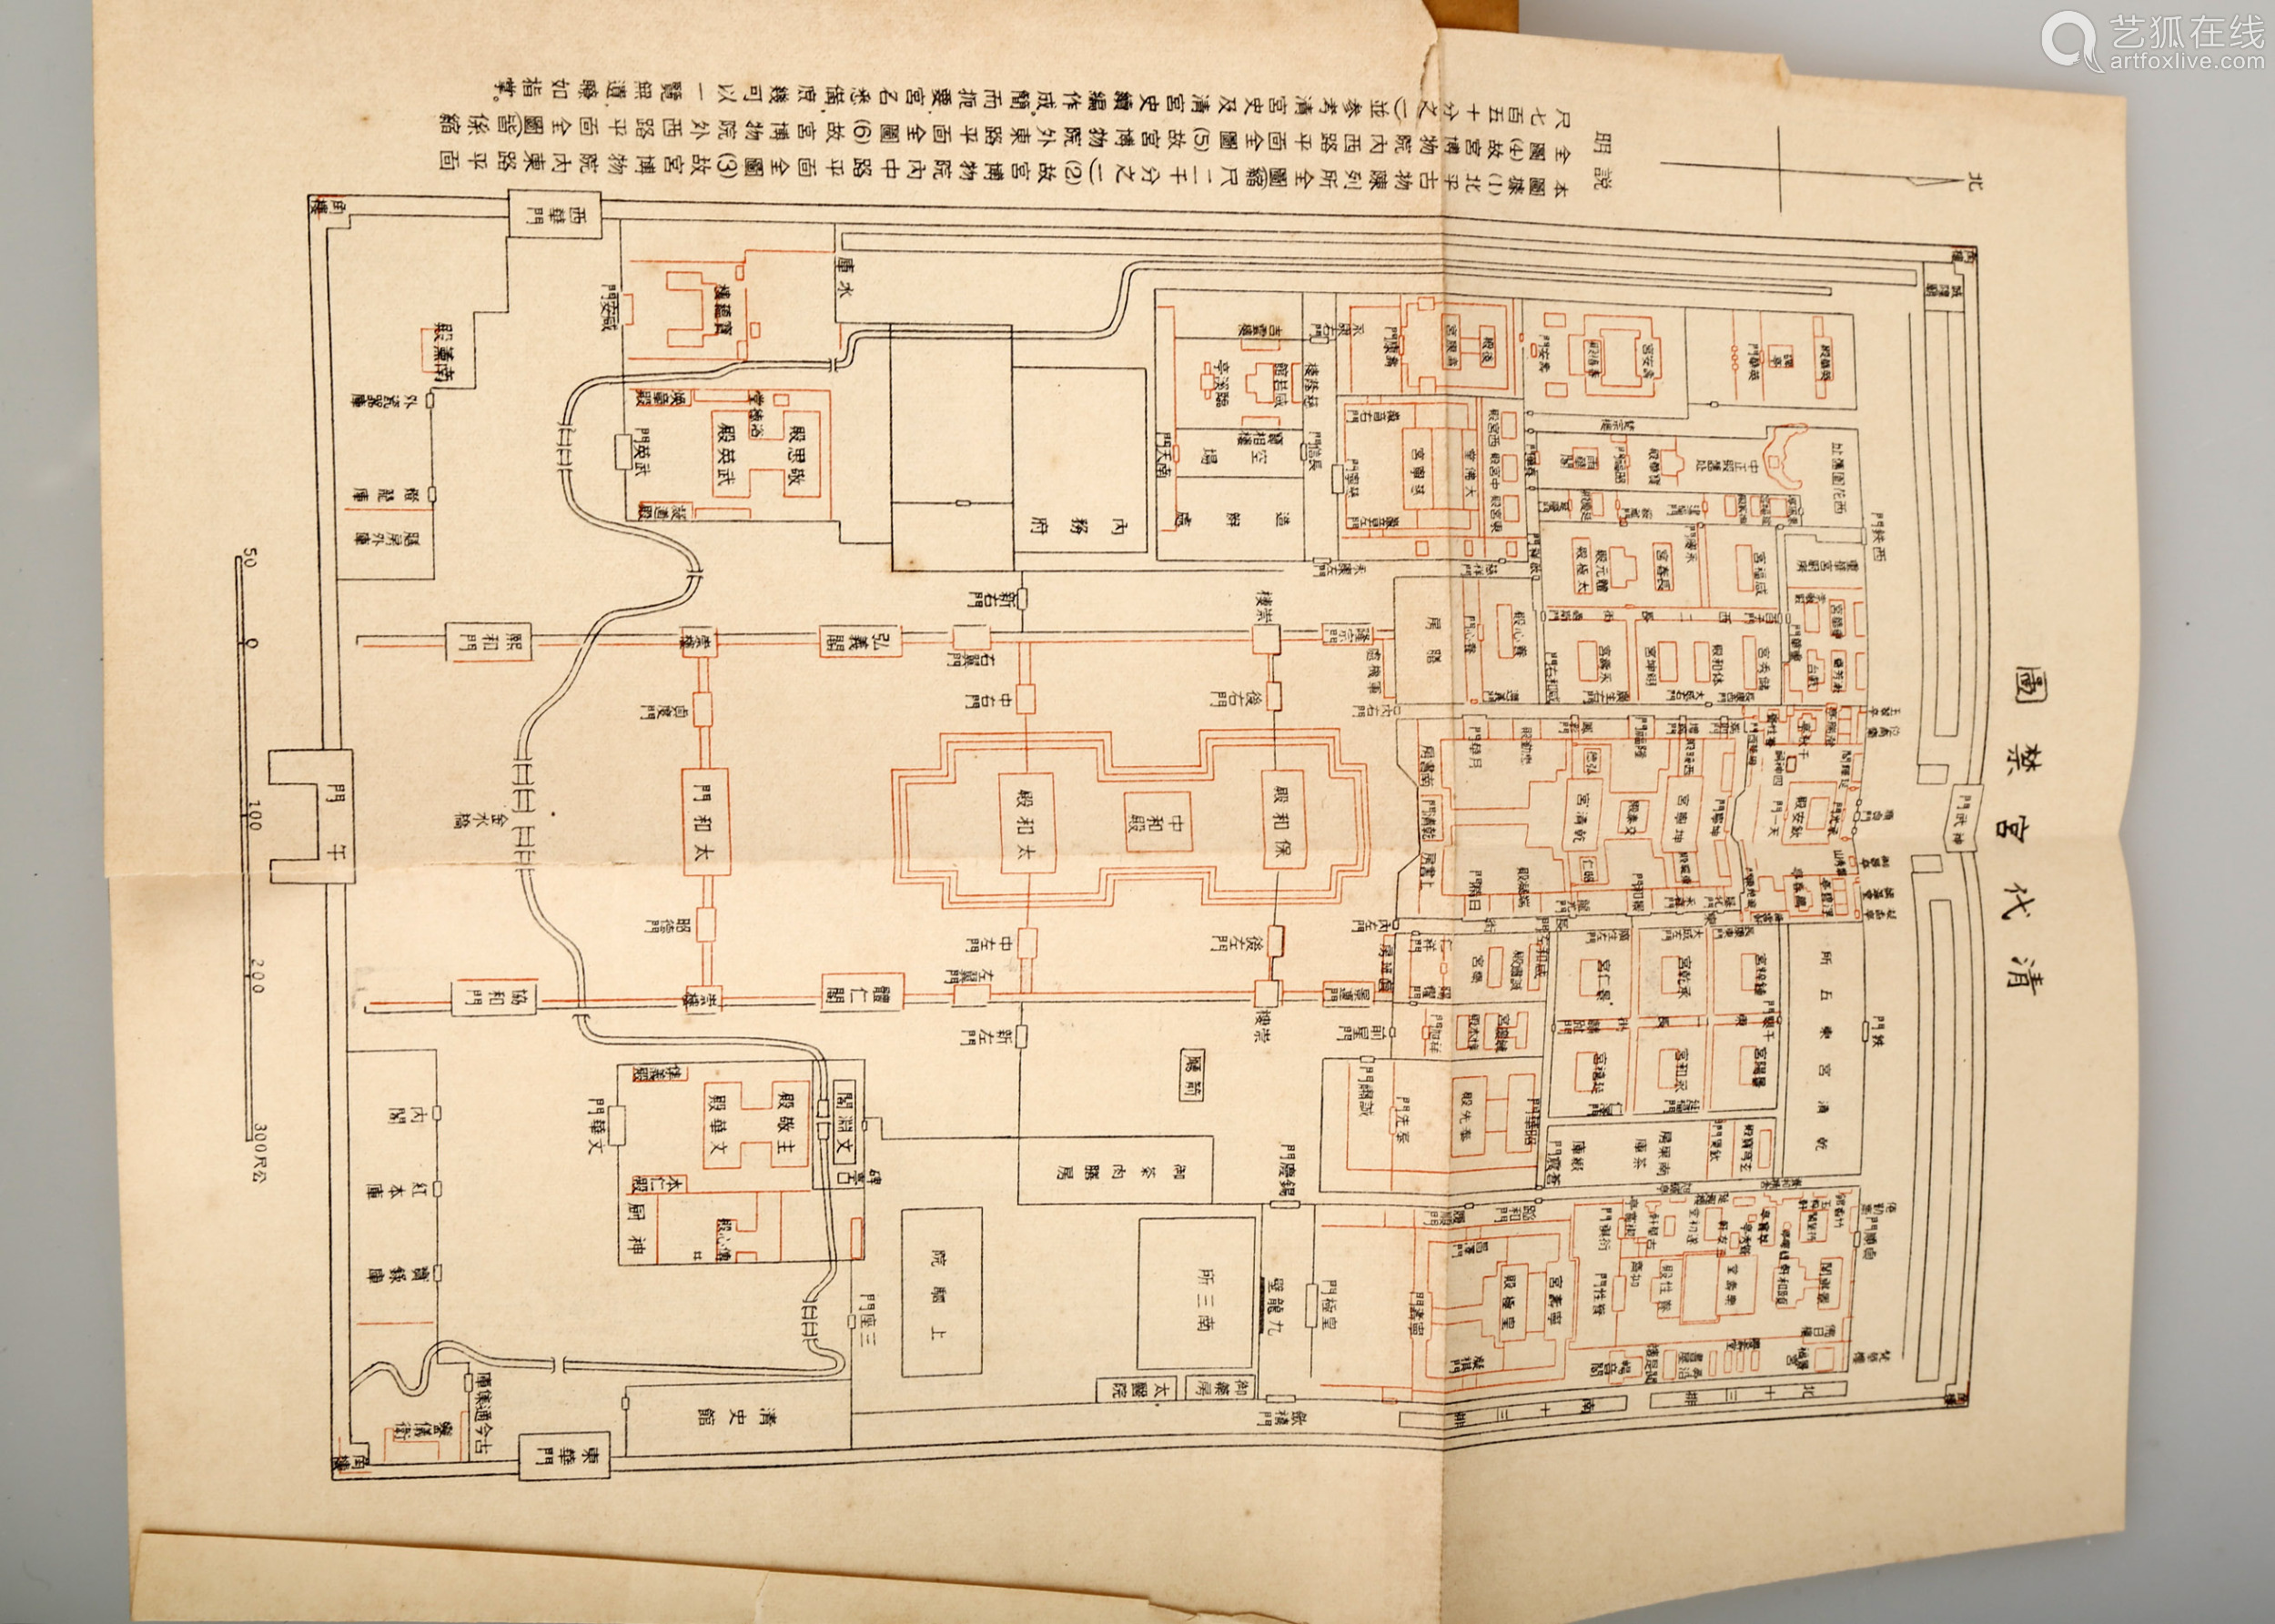 A MING AND QING DYNASTIES PALACE ARCHITECTURAL DRAWINGS AND PLANS BOOK.B027.